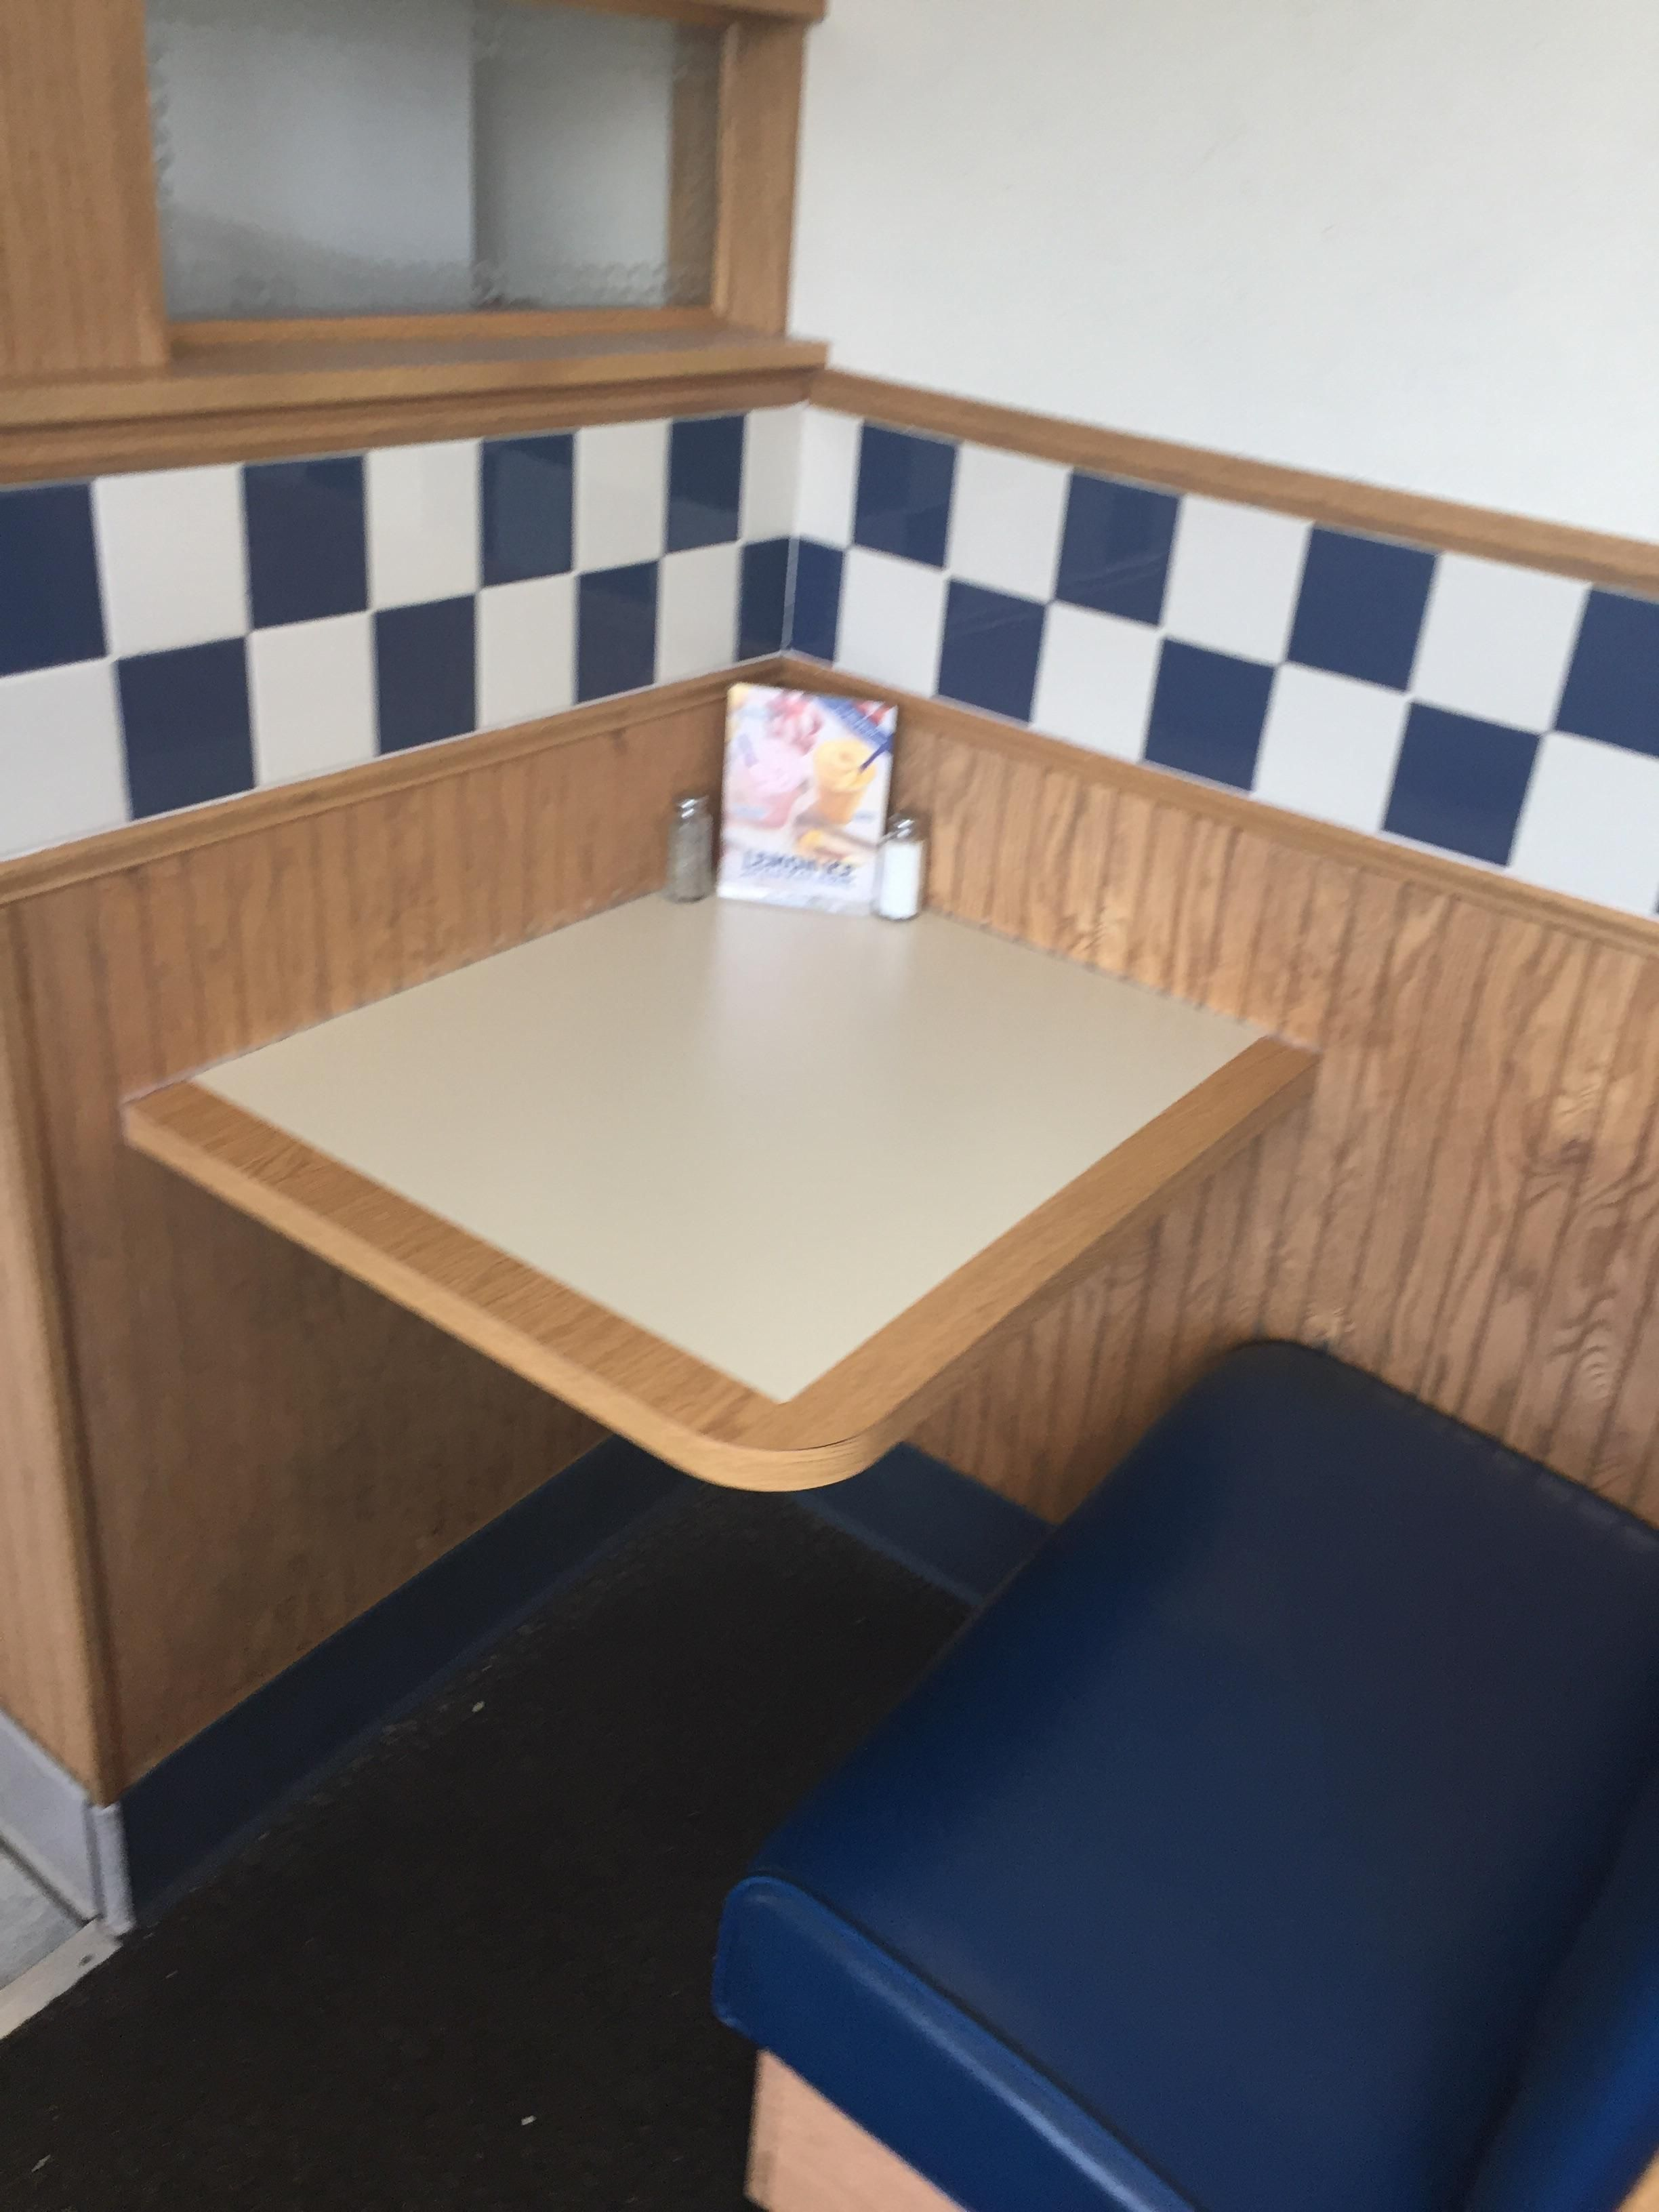 This single person dining booth.